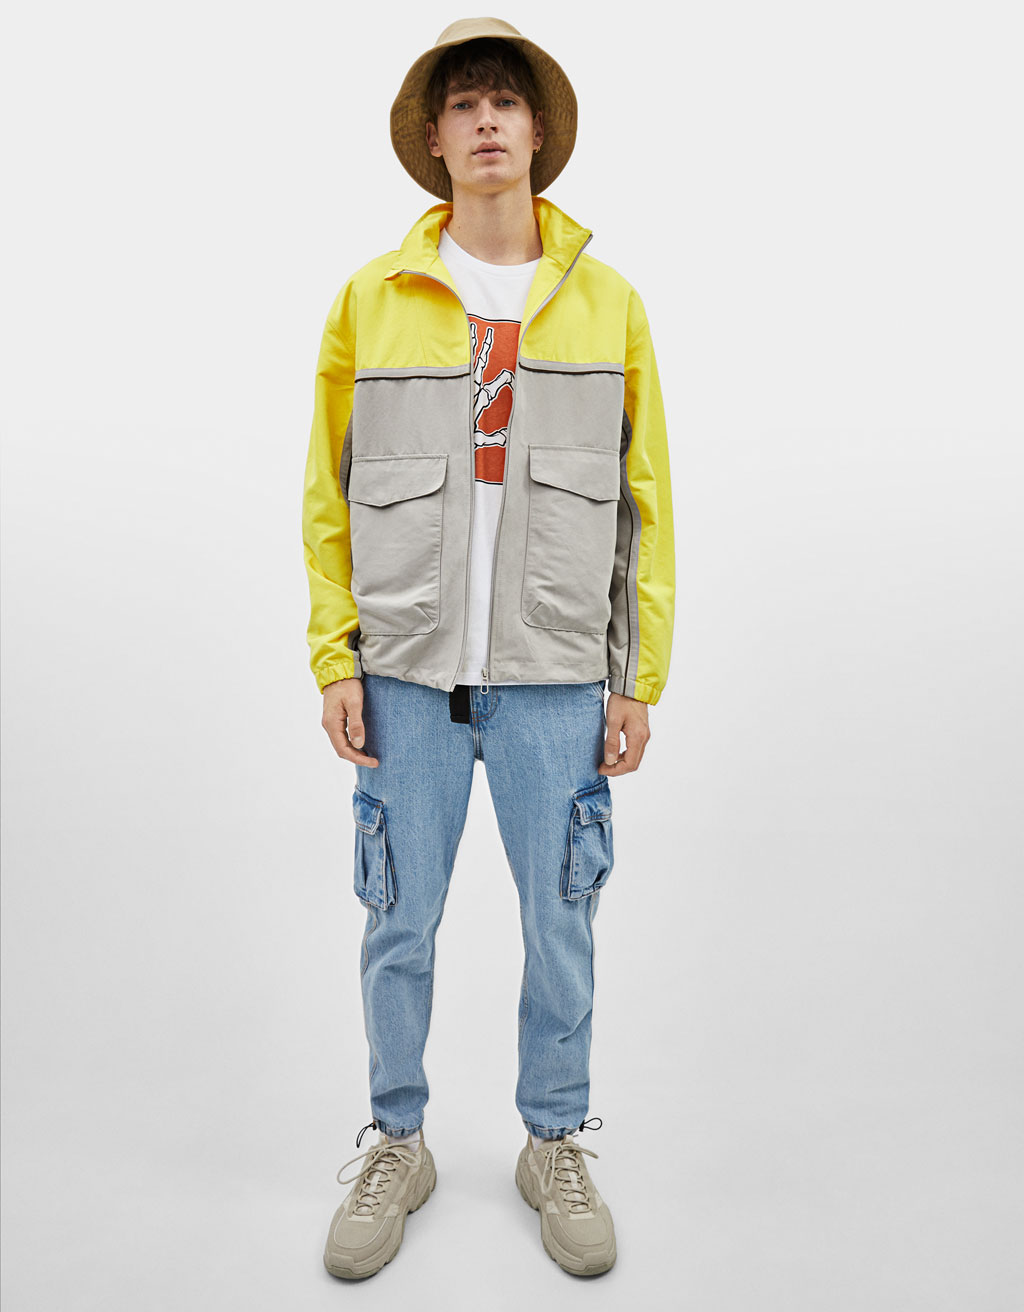 Utility jacket with oversized pockets